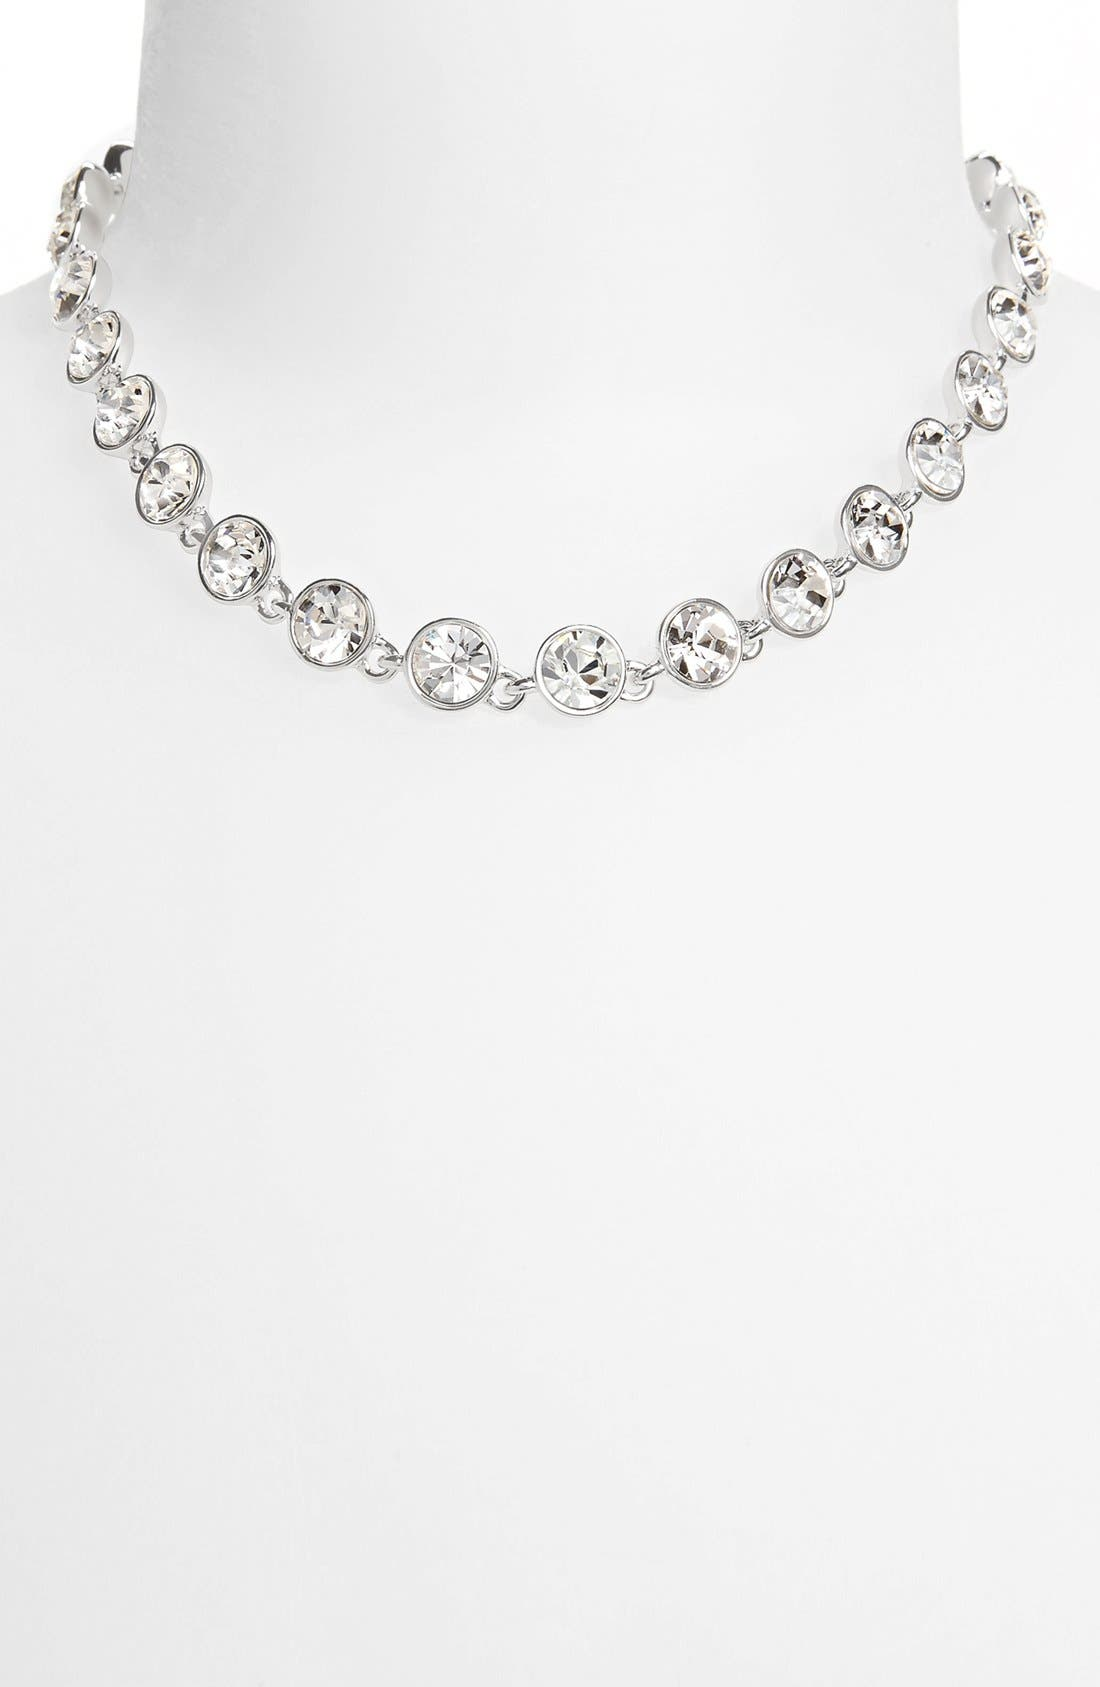 Alternate Image 1 Selected - Givenchy Crystal Station Collar Necklace (Nordstrom Exclusive)